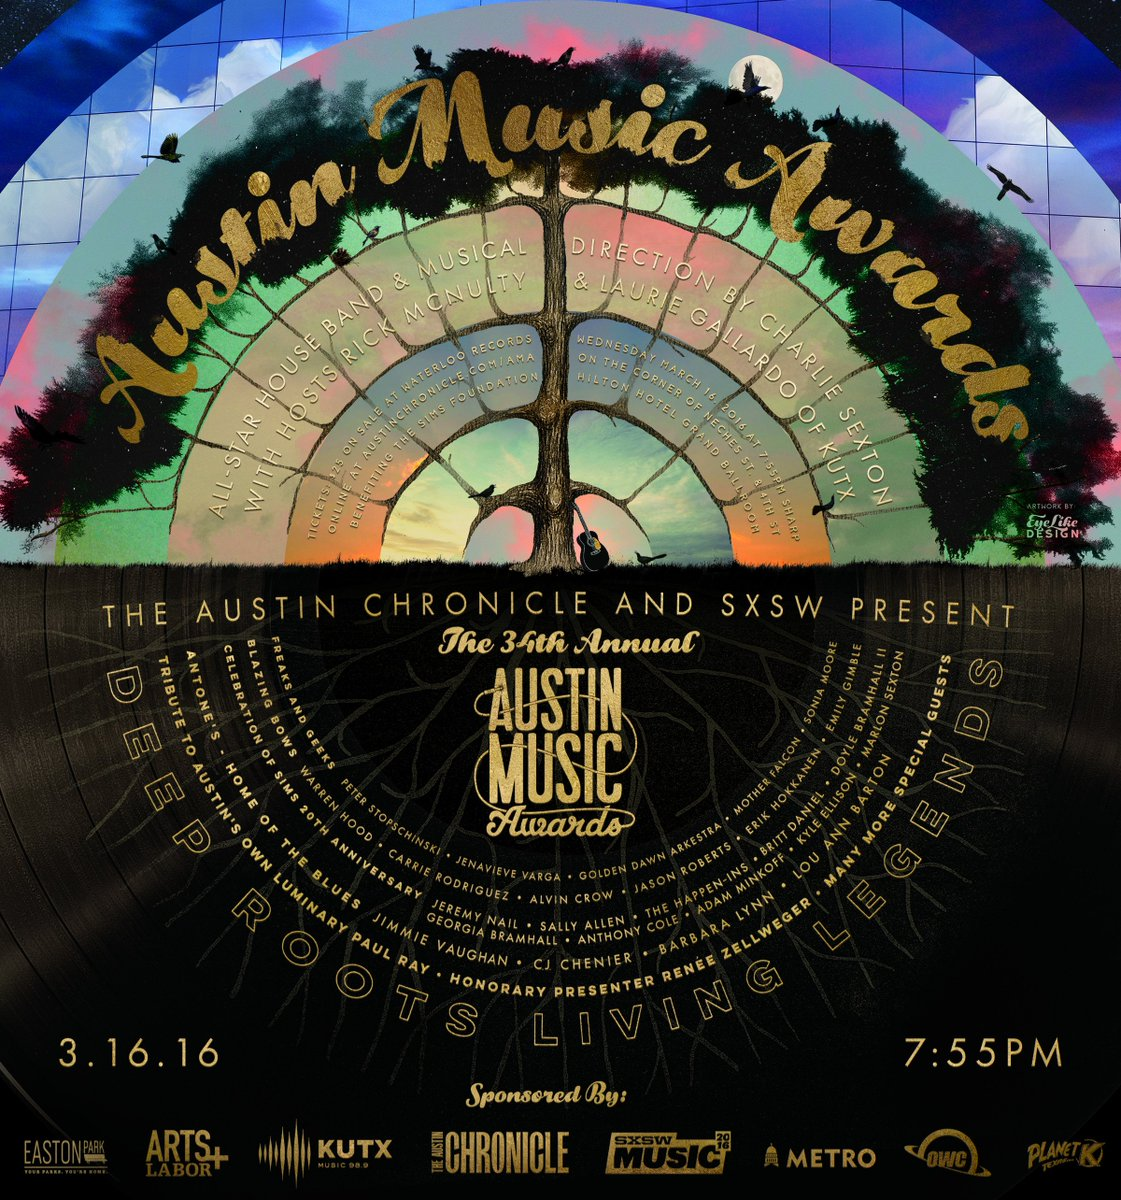 The 34th Annual #AustinMusicAwards lineup w/ Renée Zellweger + @JimmieVaughan & more. Tix: https://t.co/th1f1A4psE https://t.co/N5VRBIzAVo